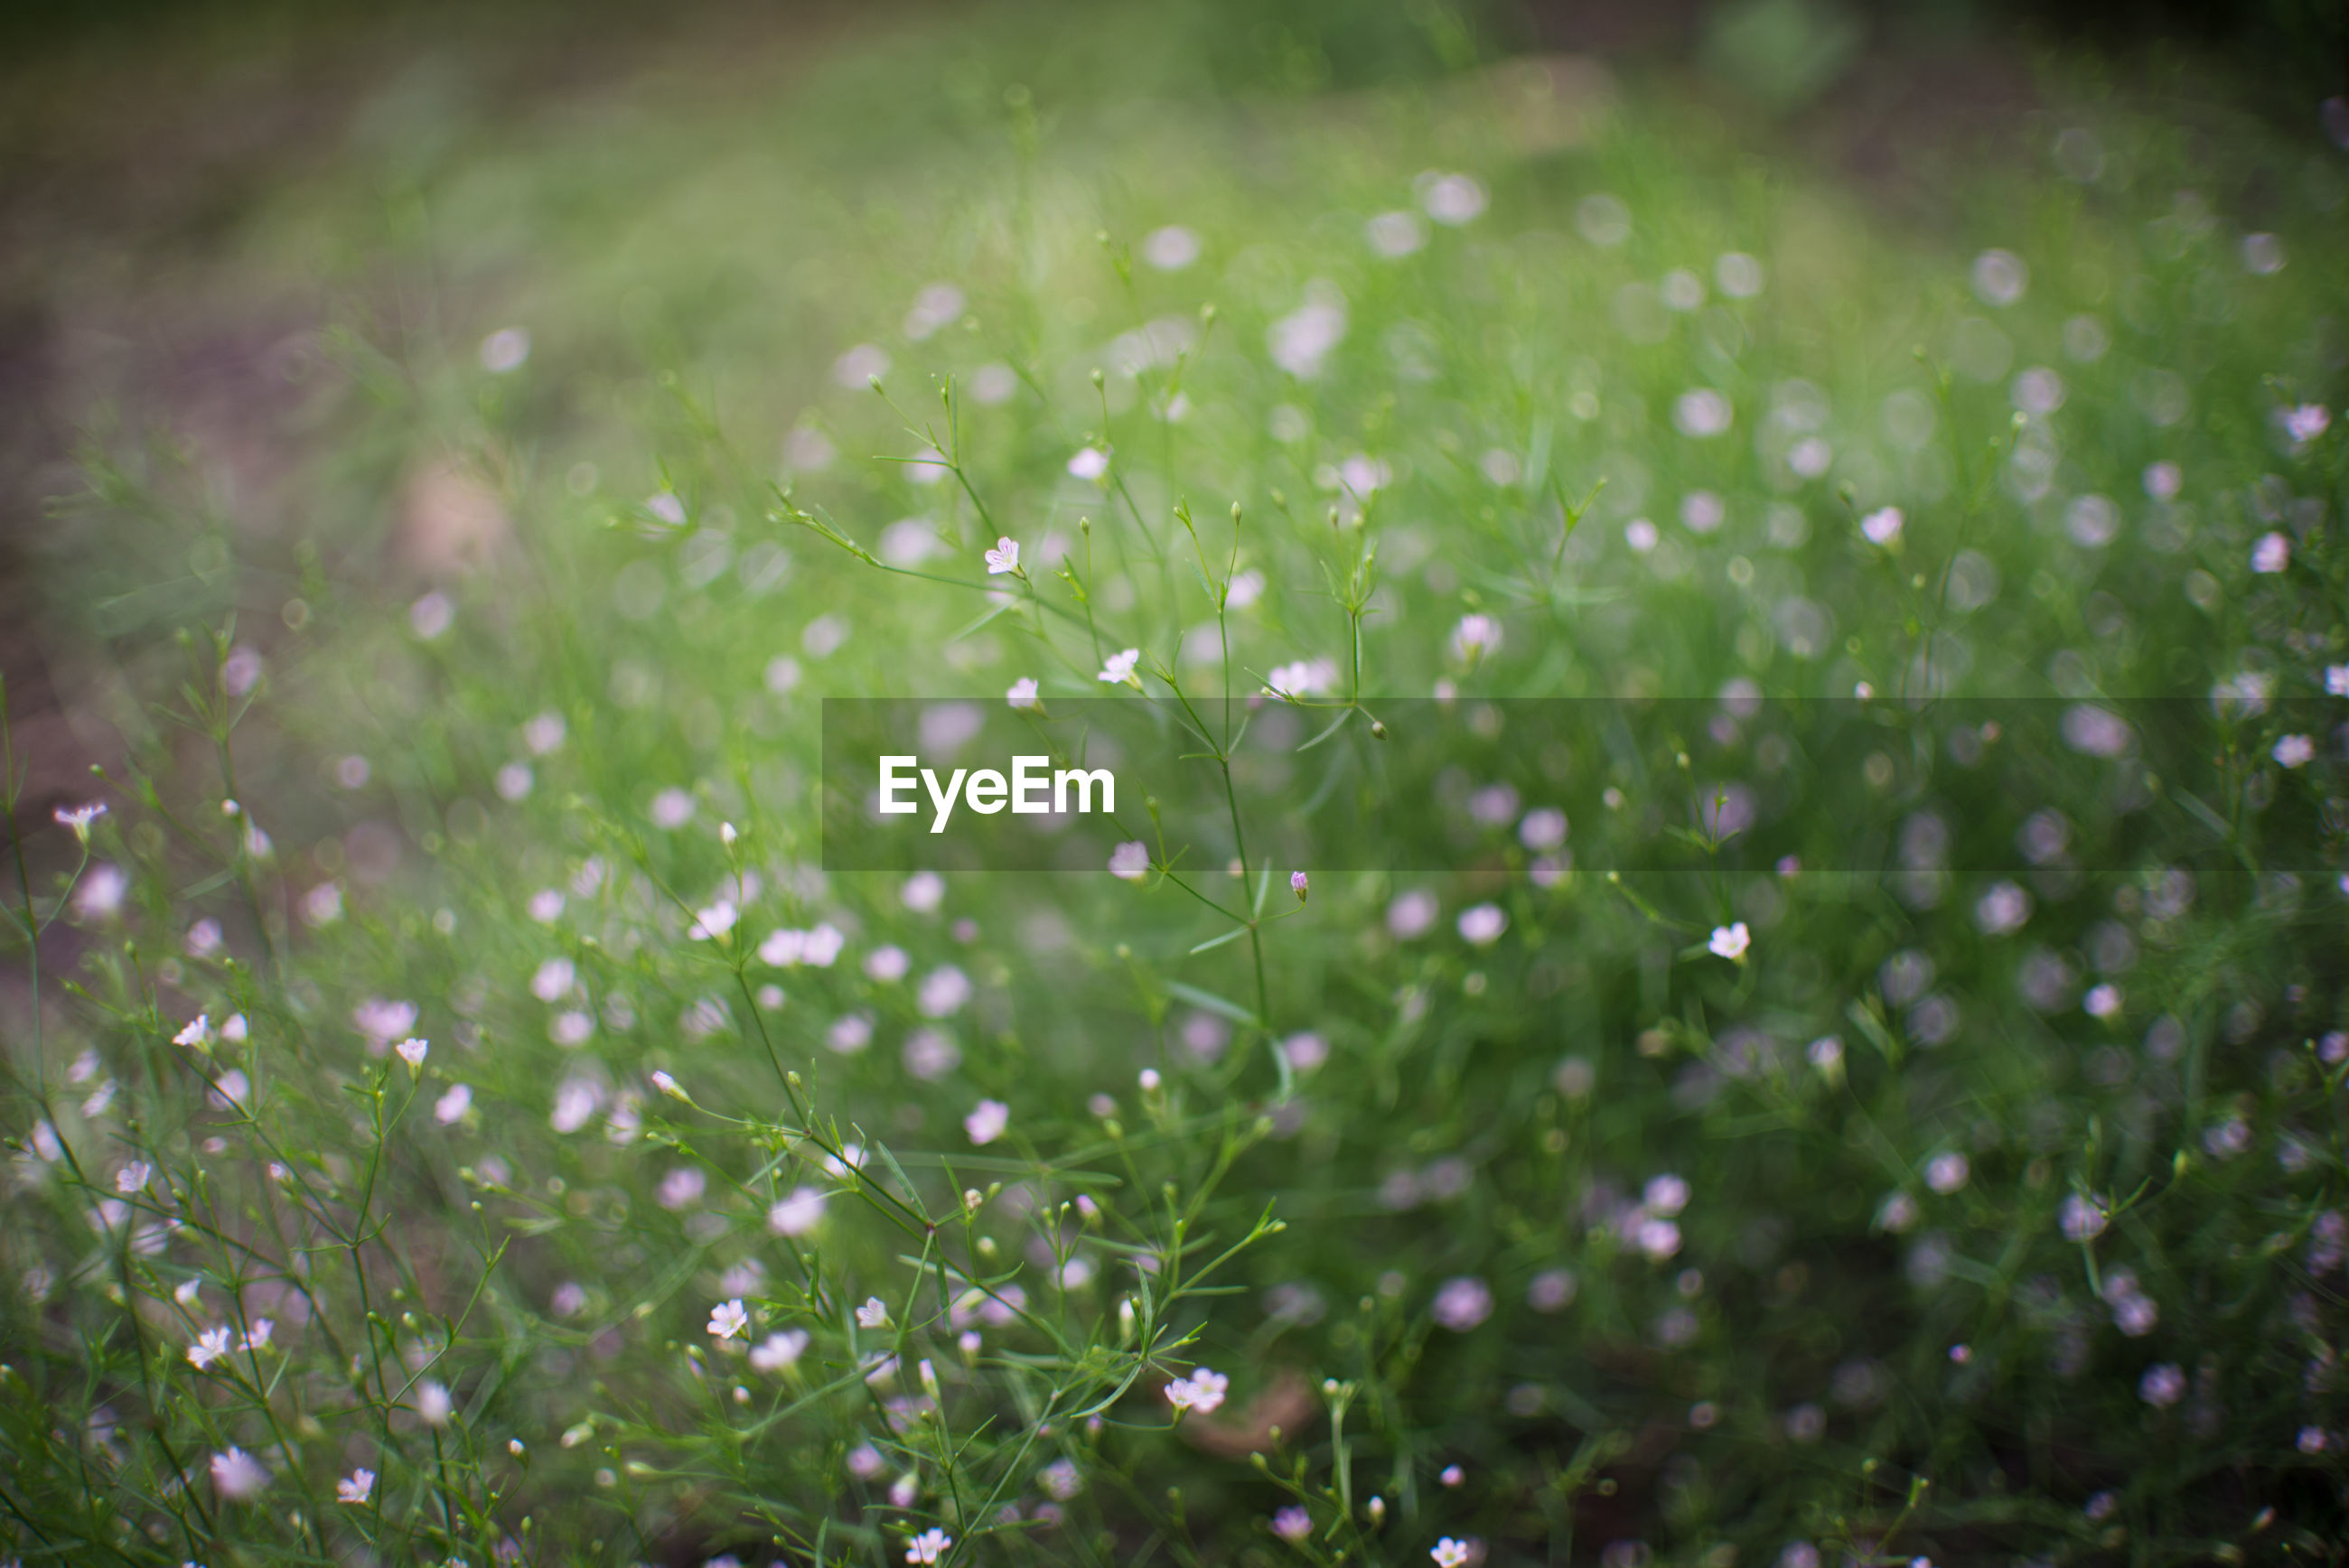 plant, green, beauty in nature, nature, freshness, grass, flower, macro photography, flowering plant, growth, drop, moisture, leaf, wet, dew, field, no people, selective focus, lawn, fragility, environment, land, water, springtime, meadow, close-up, outdoors, plain, summer, sunlight, backgrounds, tranquility, day, rain, landscape